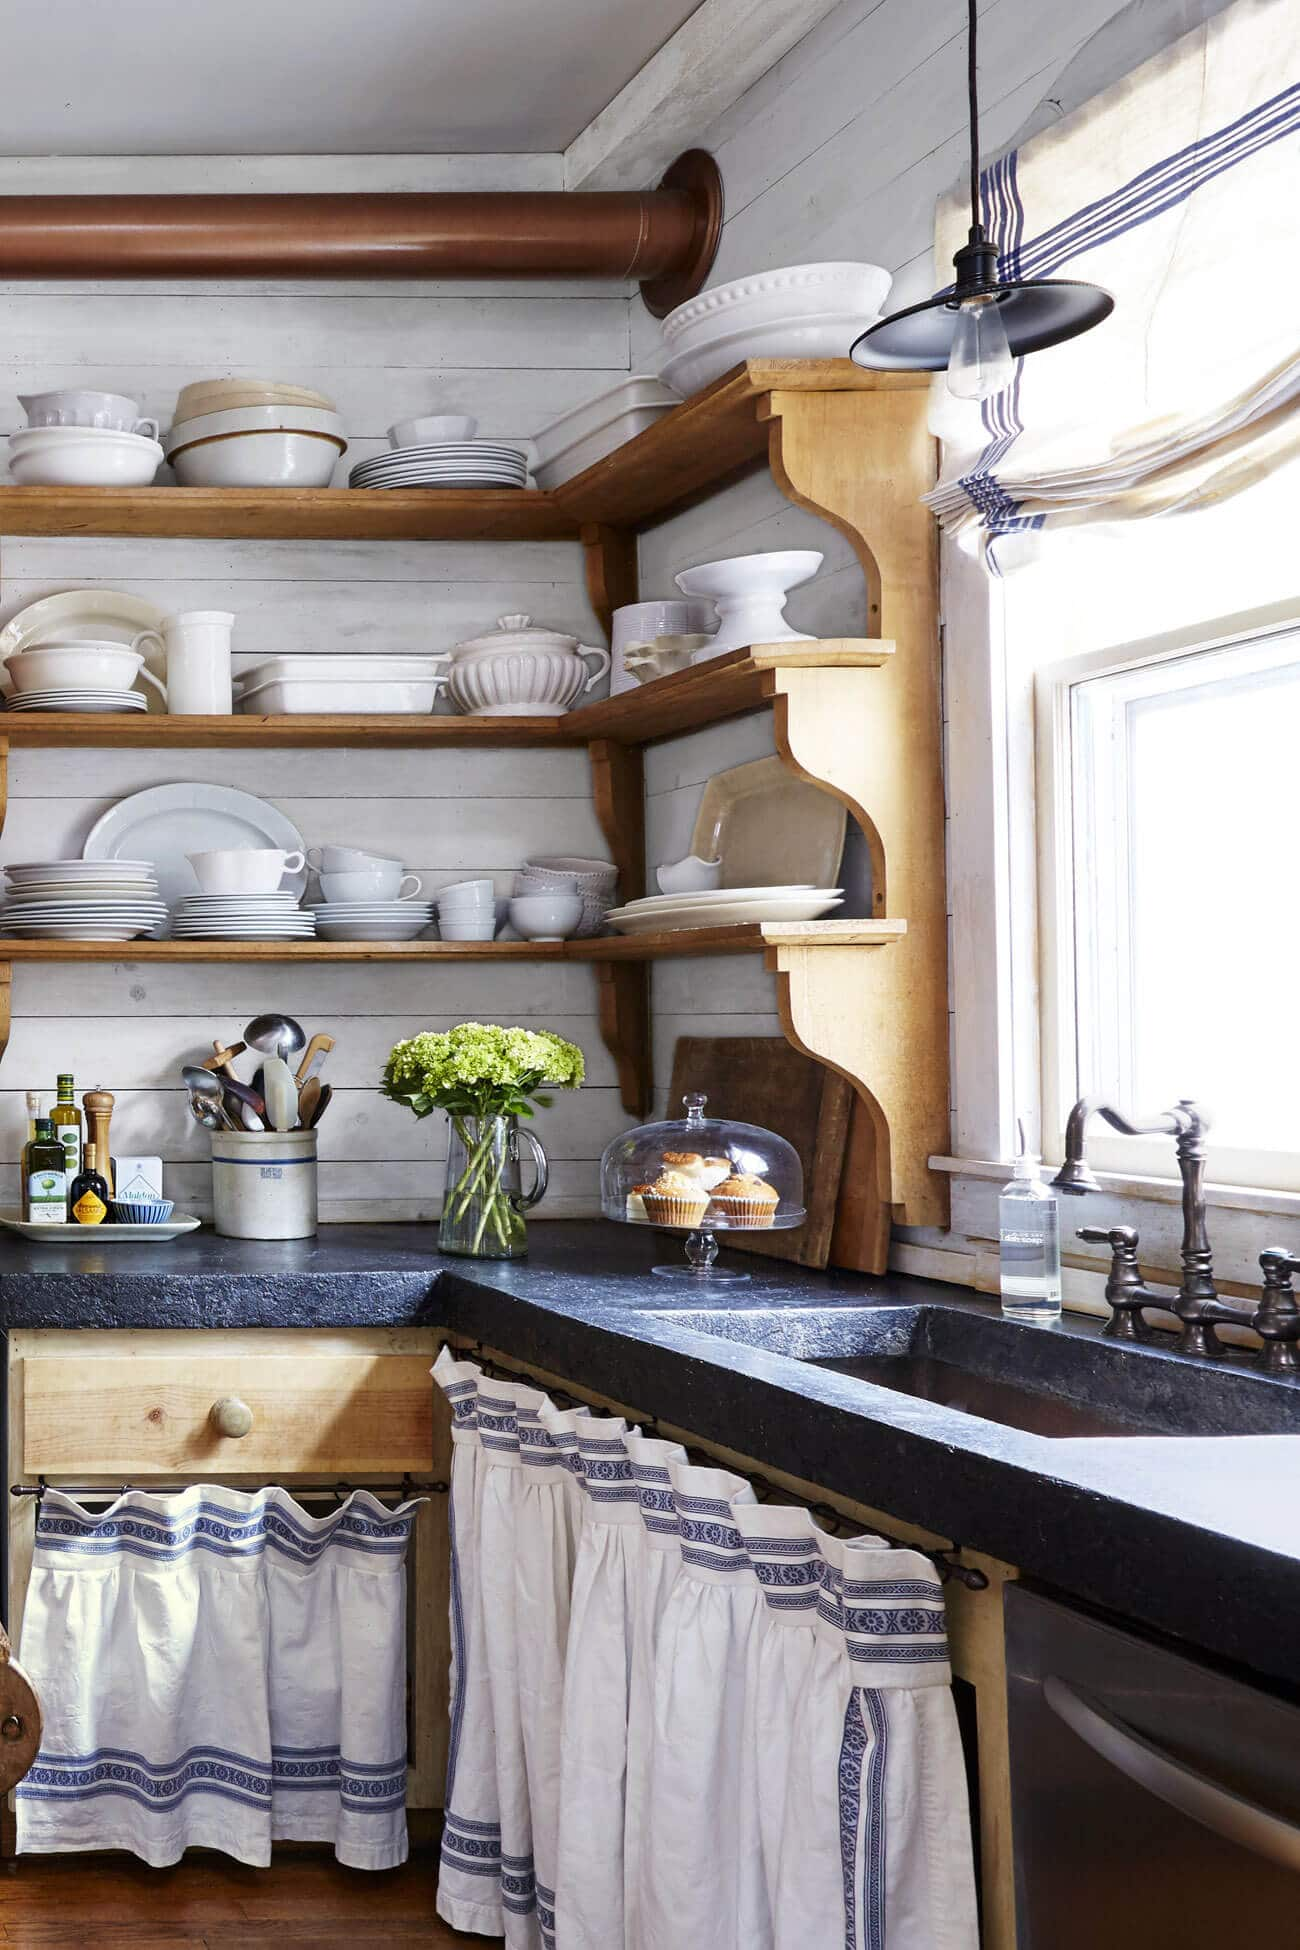 Blue and White Linen Curtains with storage shelves with dishes